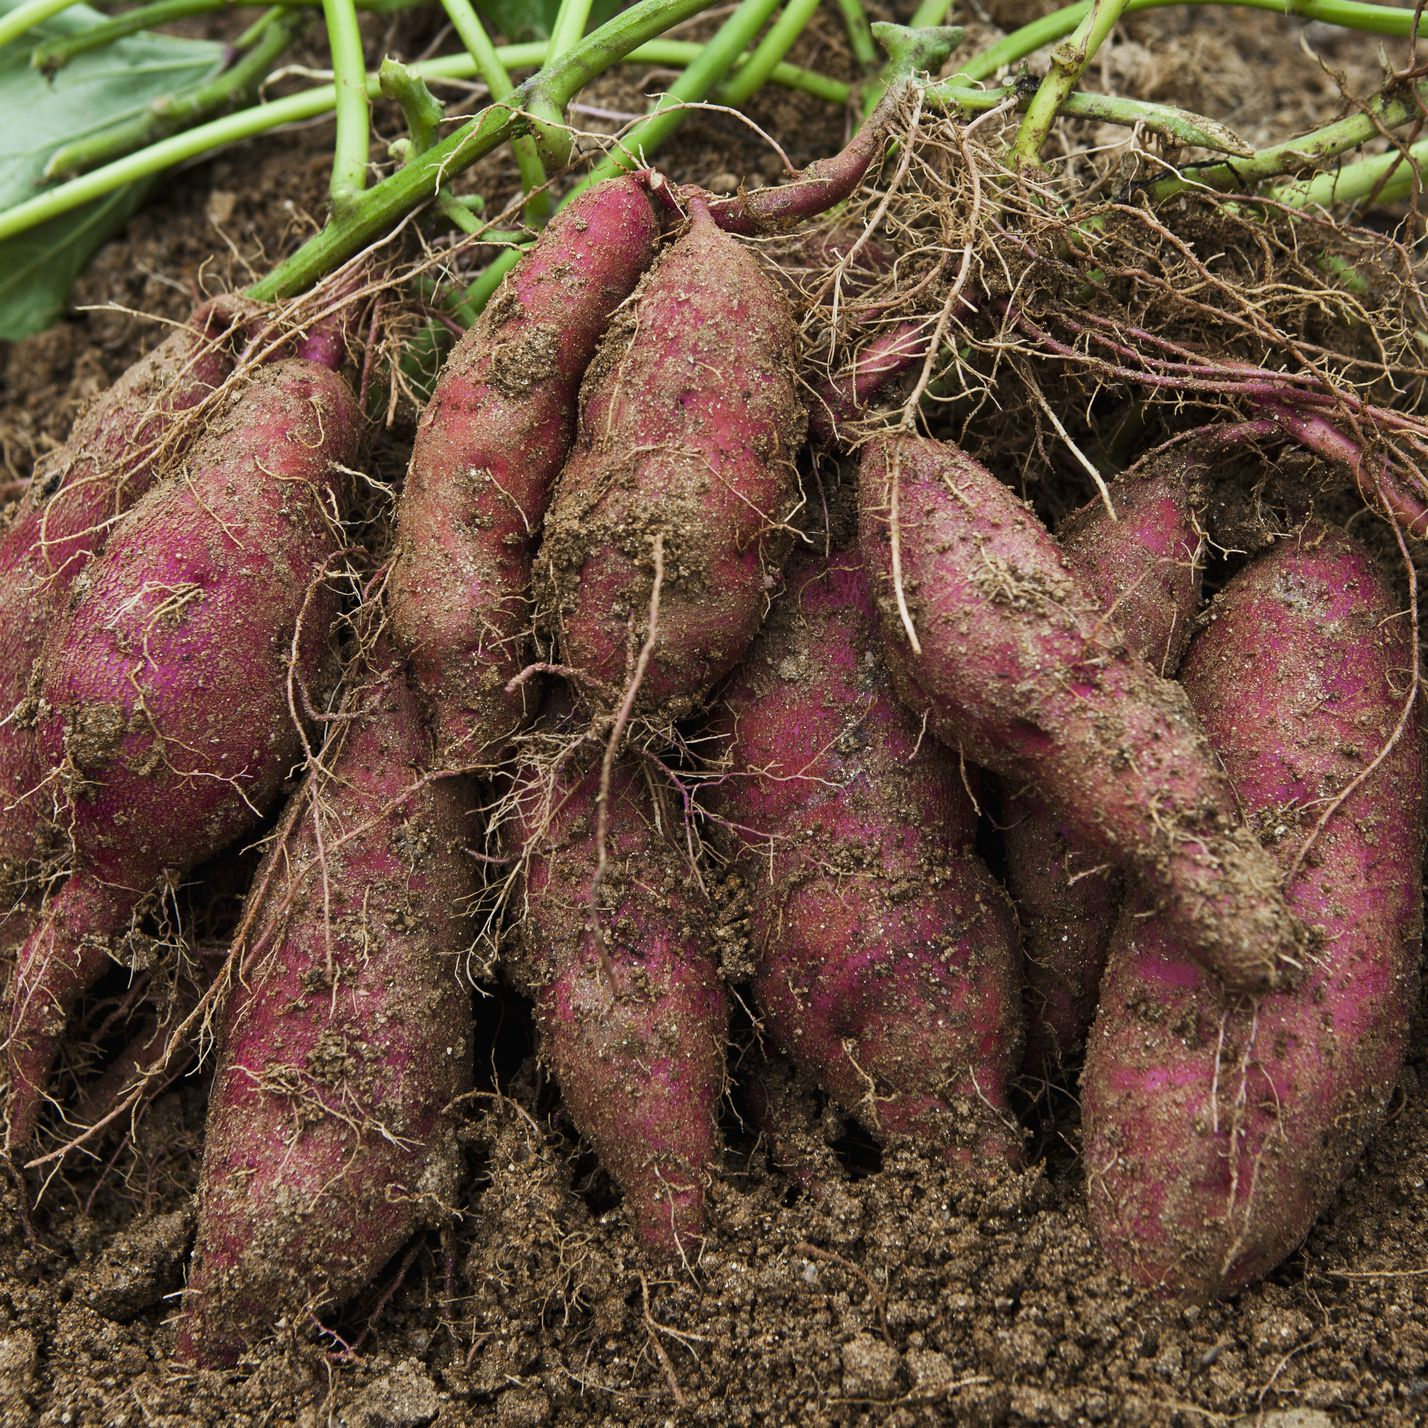 How to Grow and Care for Sweet Potatoes